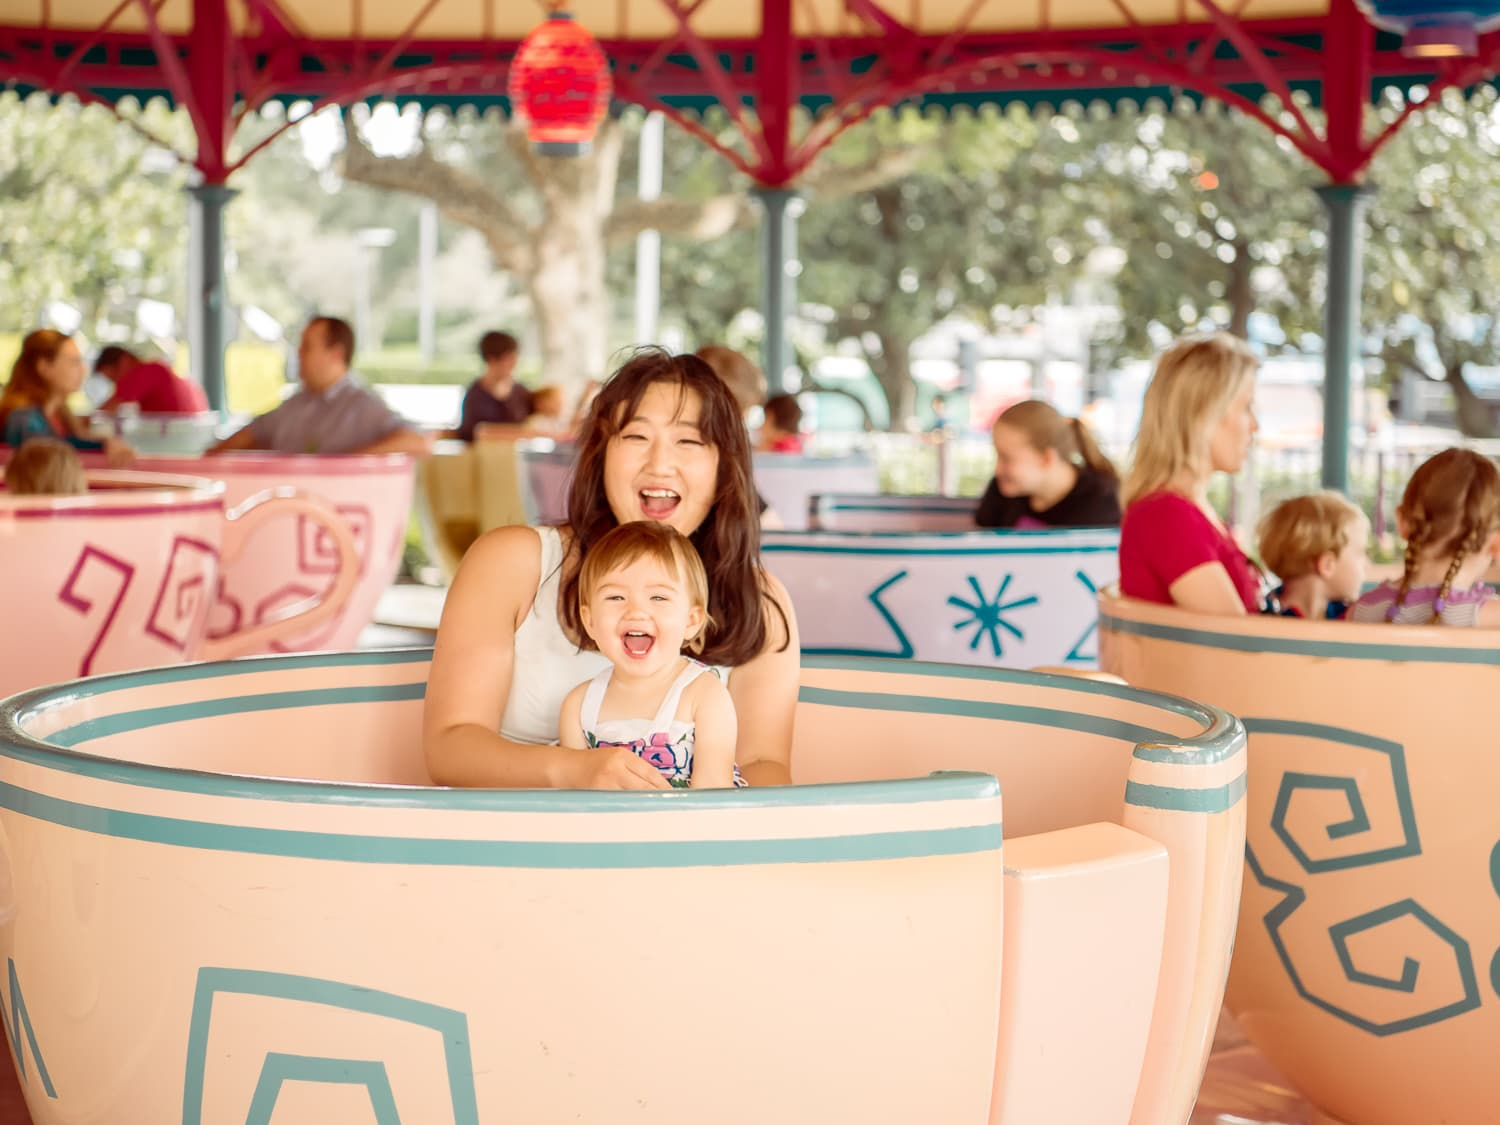 Lisa enjoying the Disney teacups a week before Christmas.